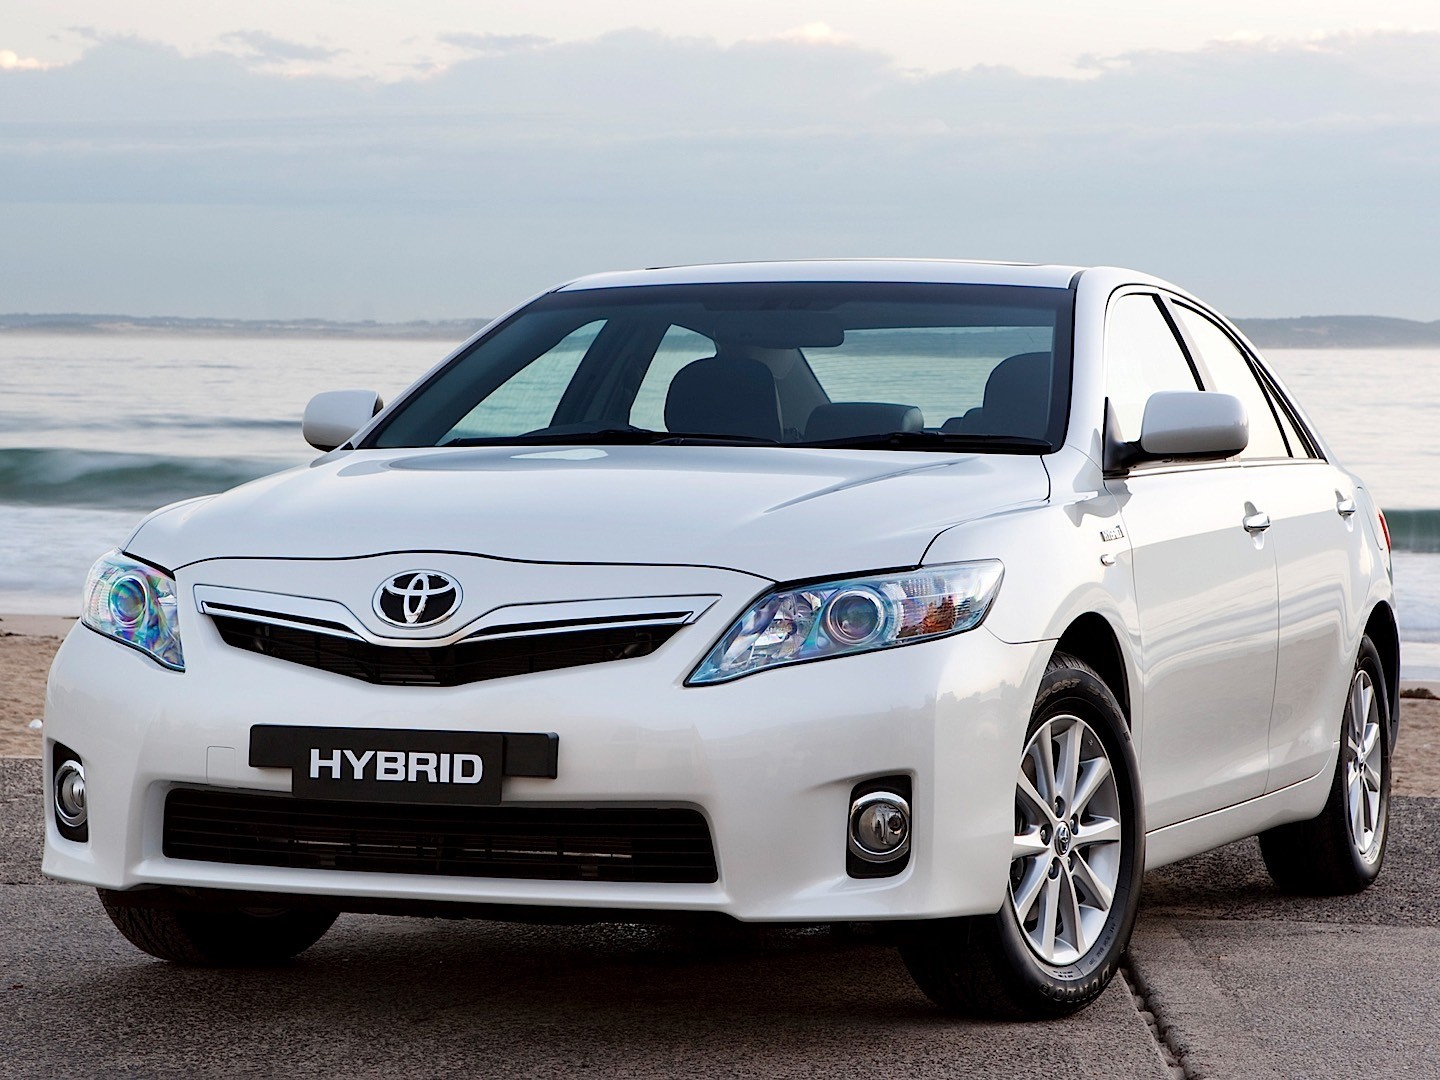 toyota camry hybrid specs 2009 2010 2011 2012 2013 2014 autoevolution. Black Bedroom Furniture Sets. Home Design Ideas